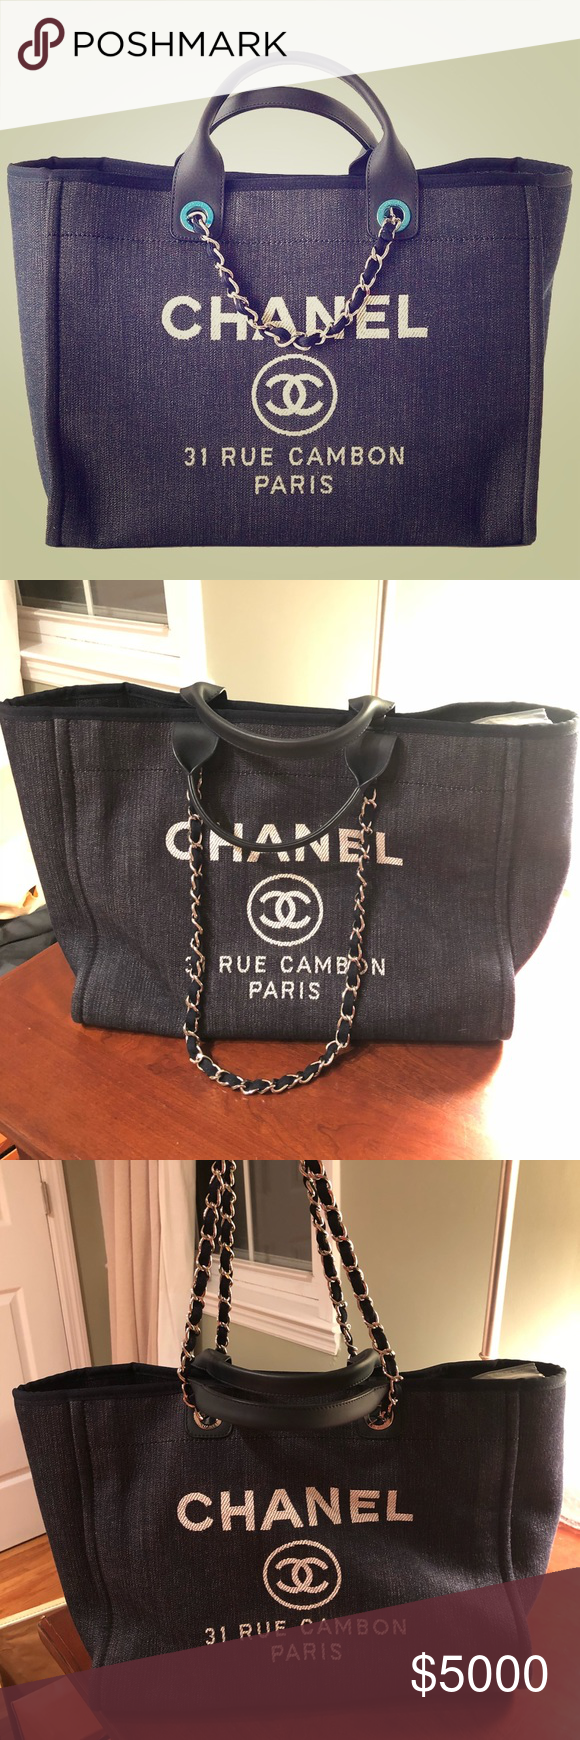 db283efed Spotted while shopping on Poshmark: CHANEL 🔥DEAUVILLE XL 🔥TOTE SHOULDER  BAG NWT! #poshmark #fashion #shopping #style #CHANEL #Handbags